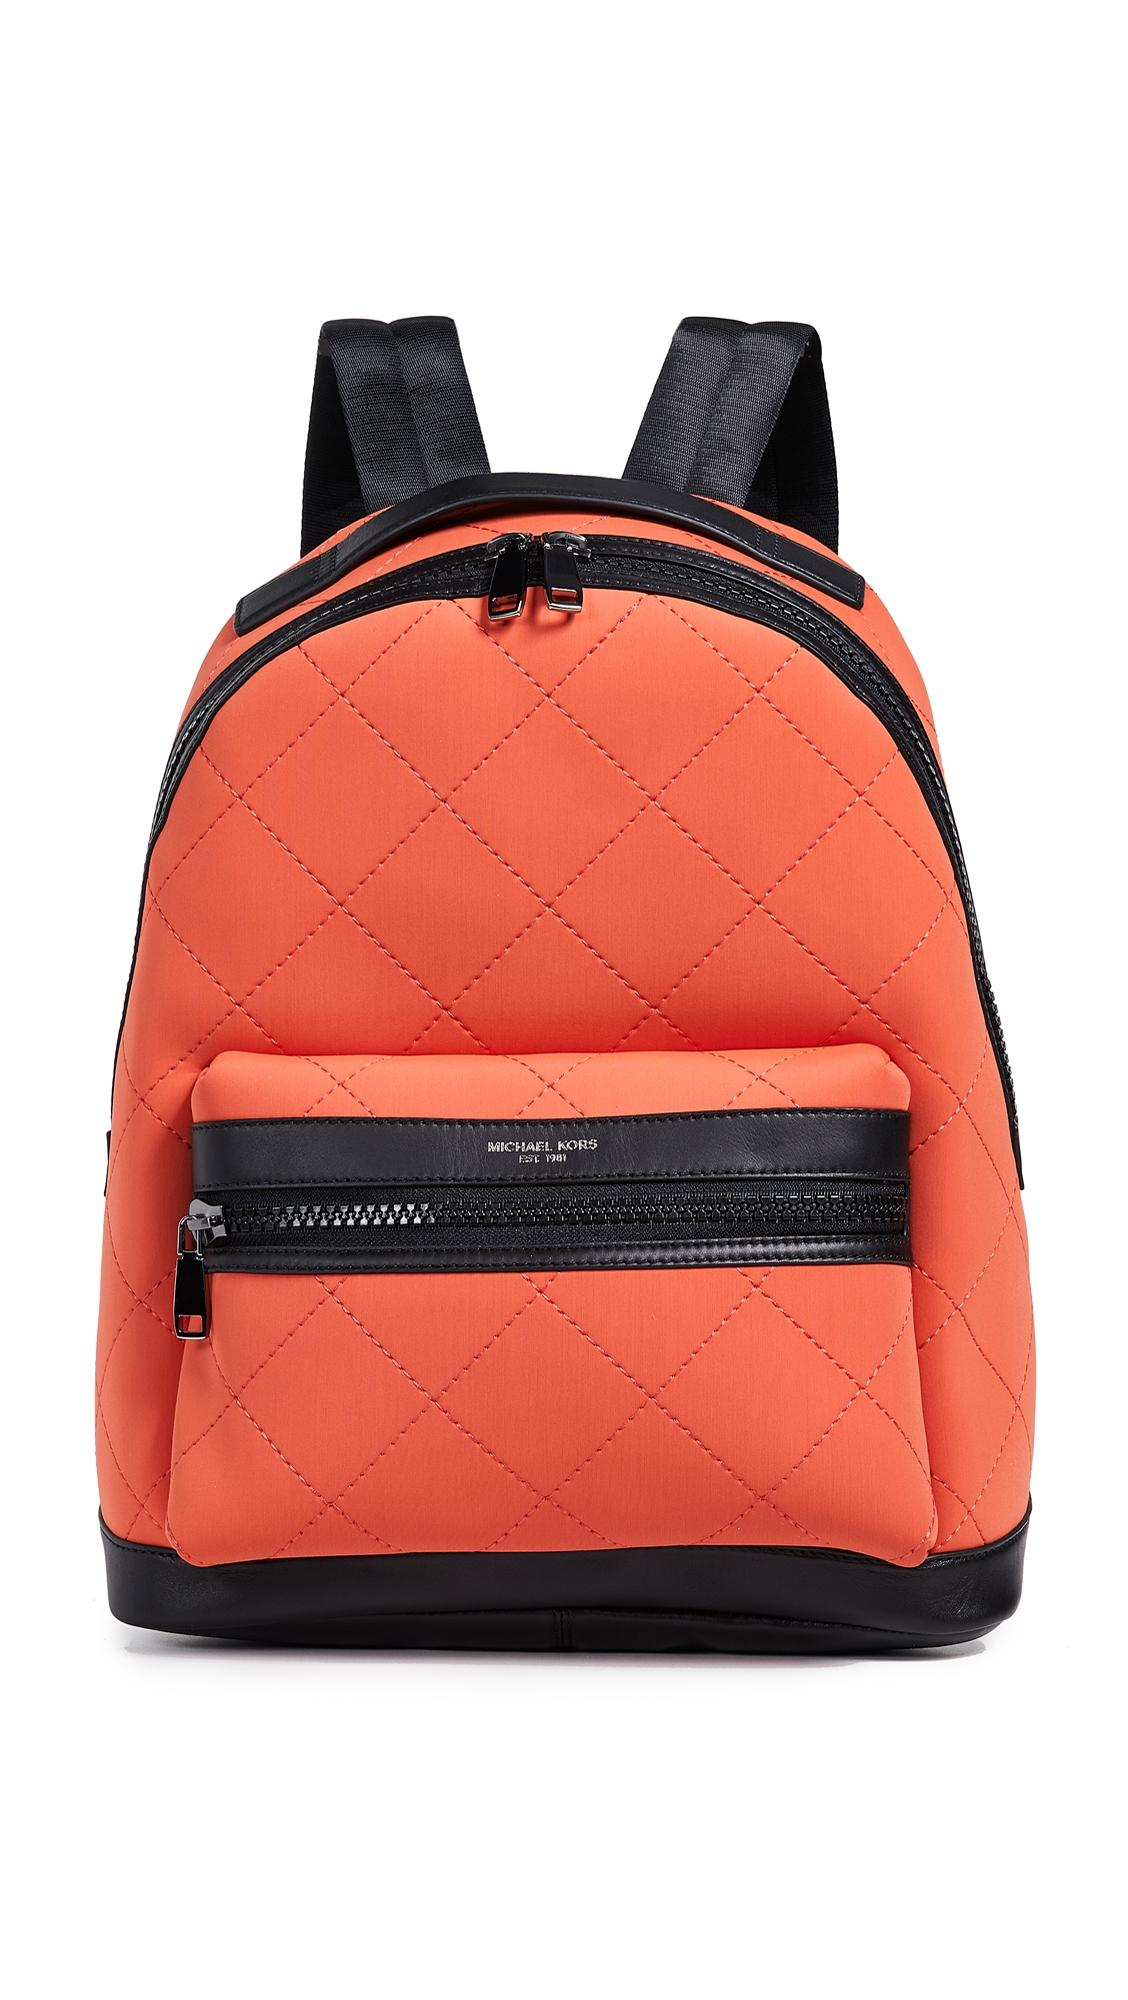 6a0f1054864a Michael Kors Odin Neoprene Backpack In Bright Orange